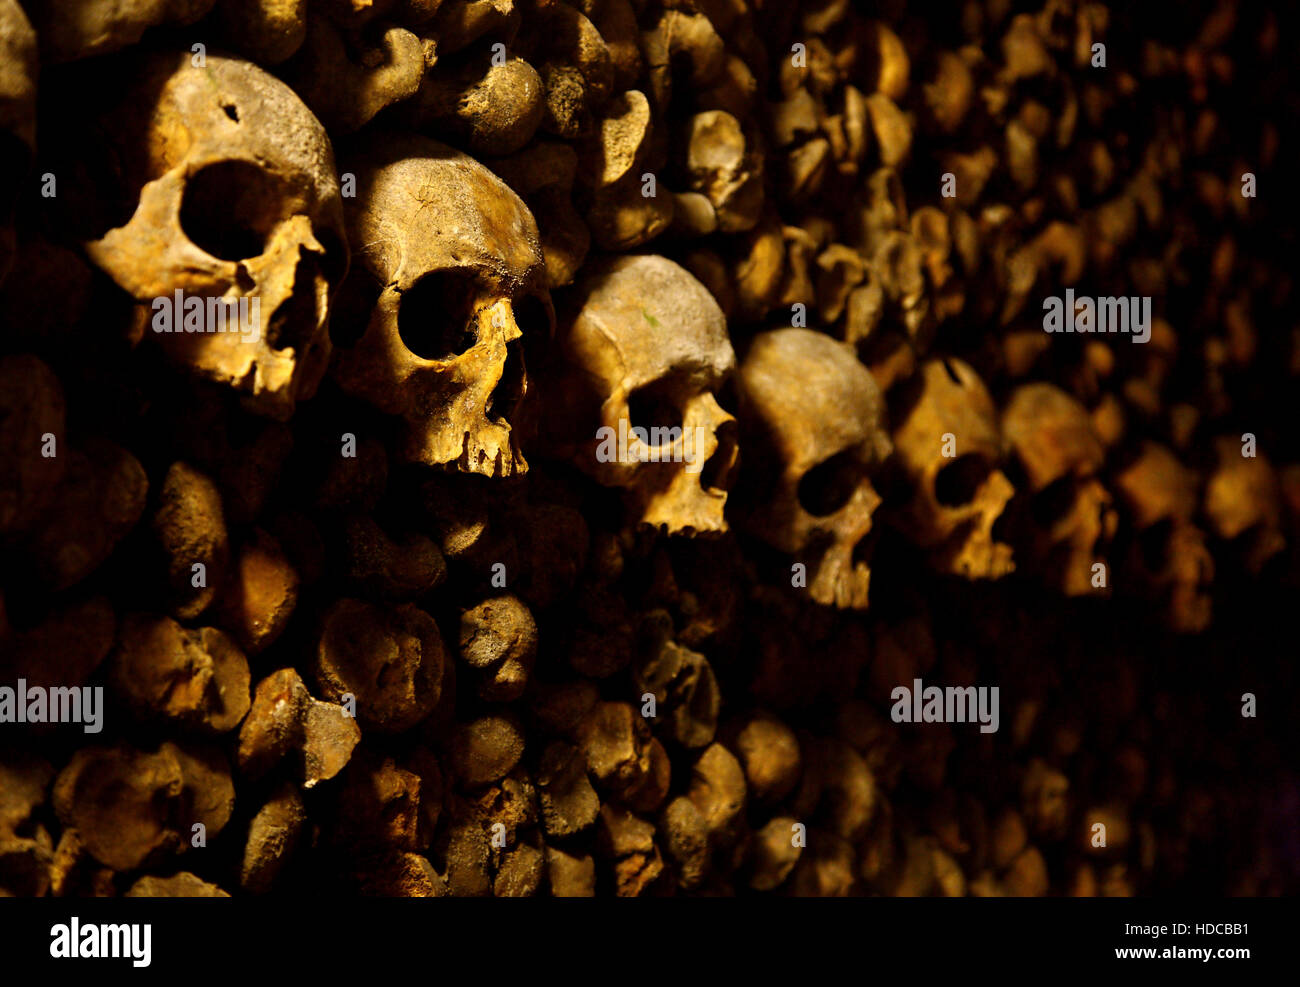 In the Catacombs of Paris, a huge ossuary in some abandoned mines in Montparnasse, Paris, France. - Stock Image